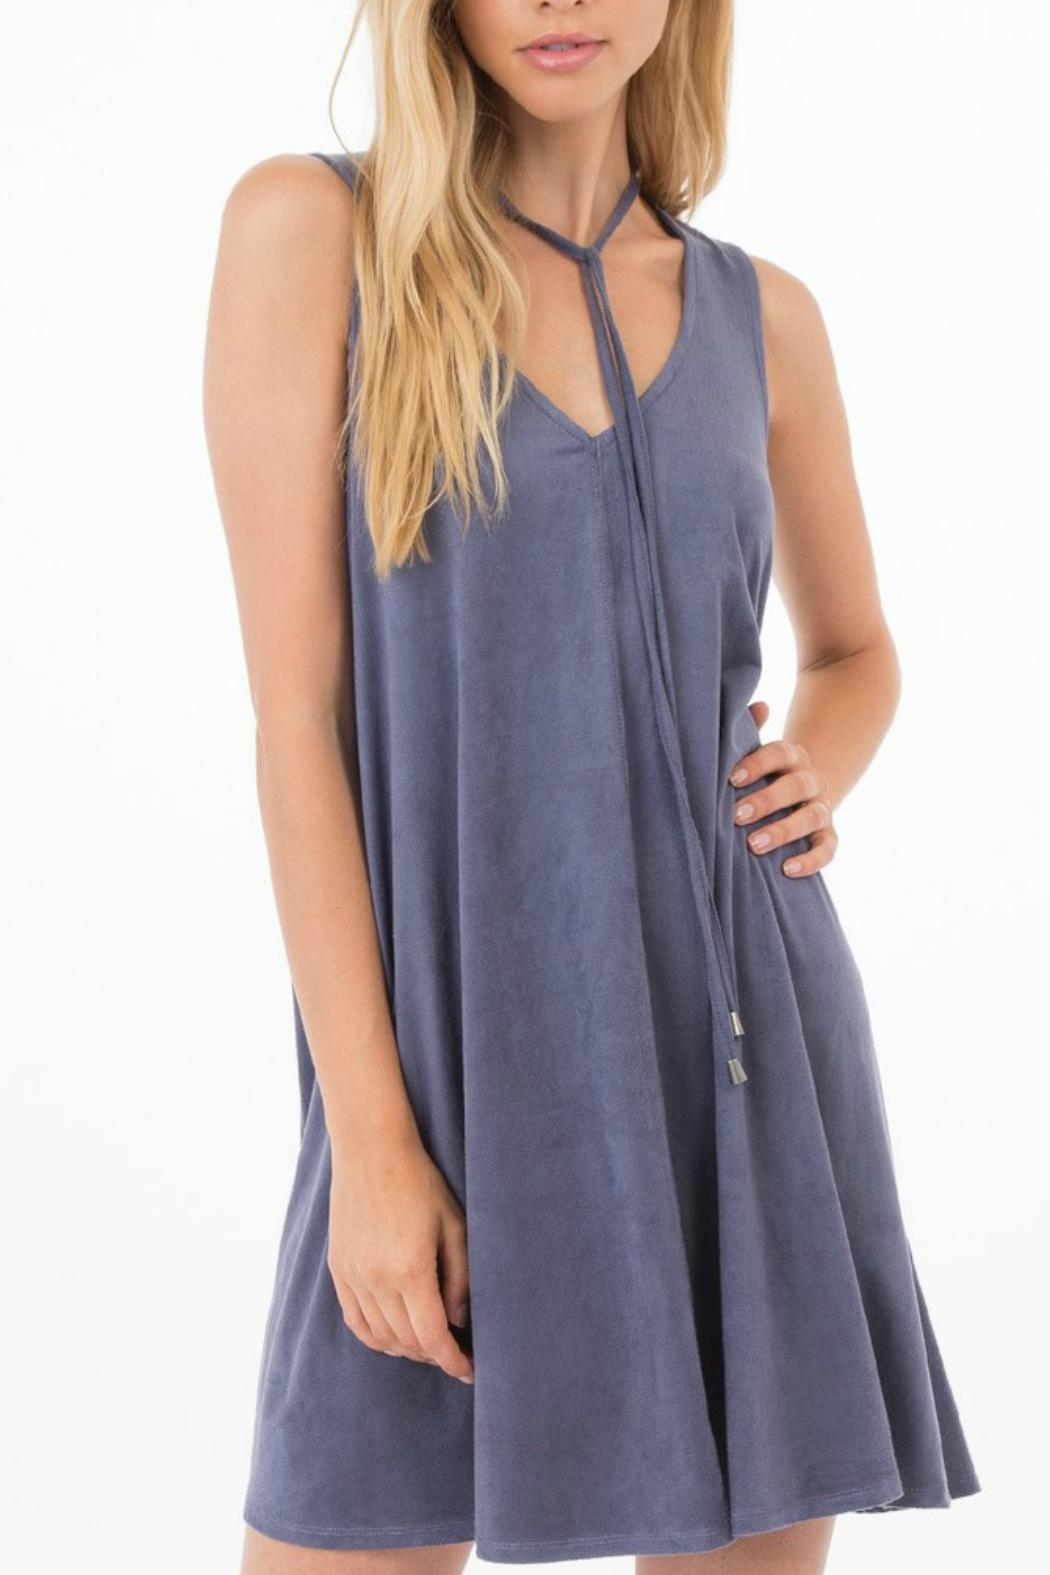 ALB Anchorage Elowan Suede Dress - Front Cropped Image